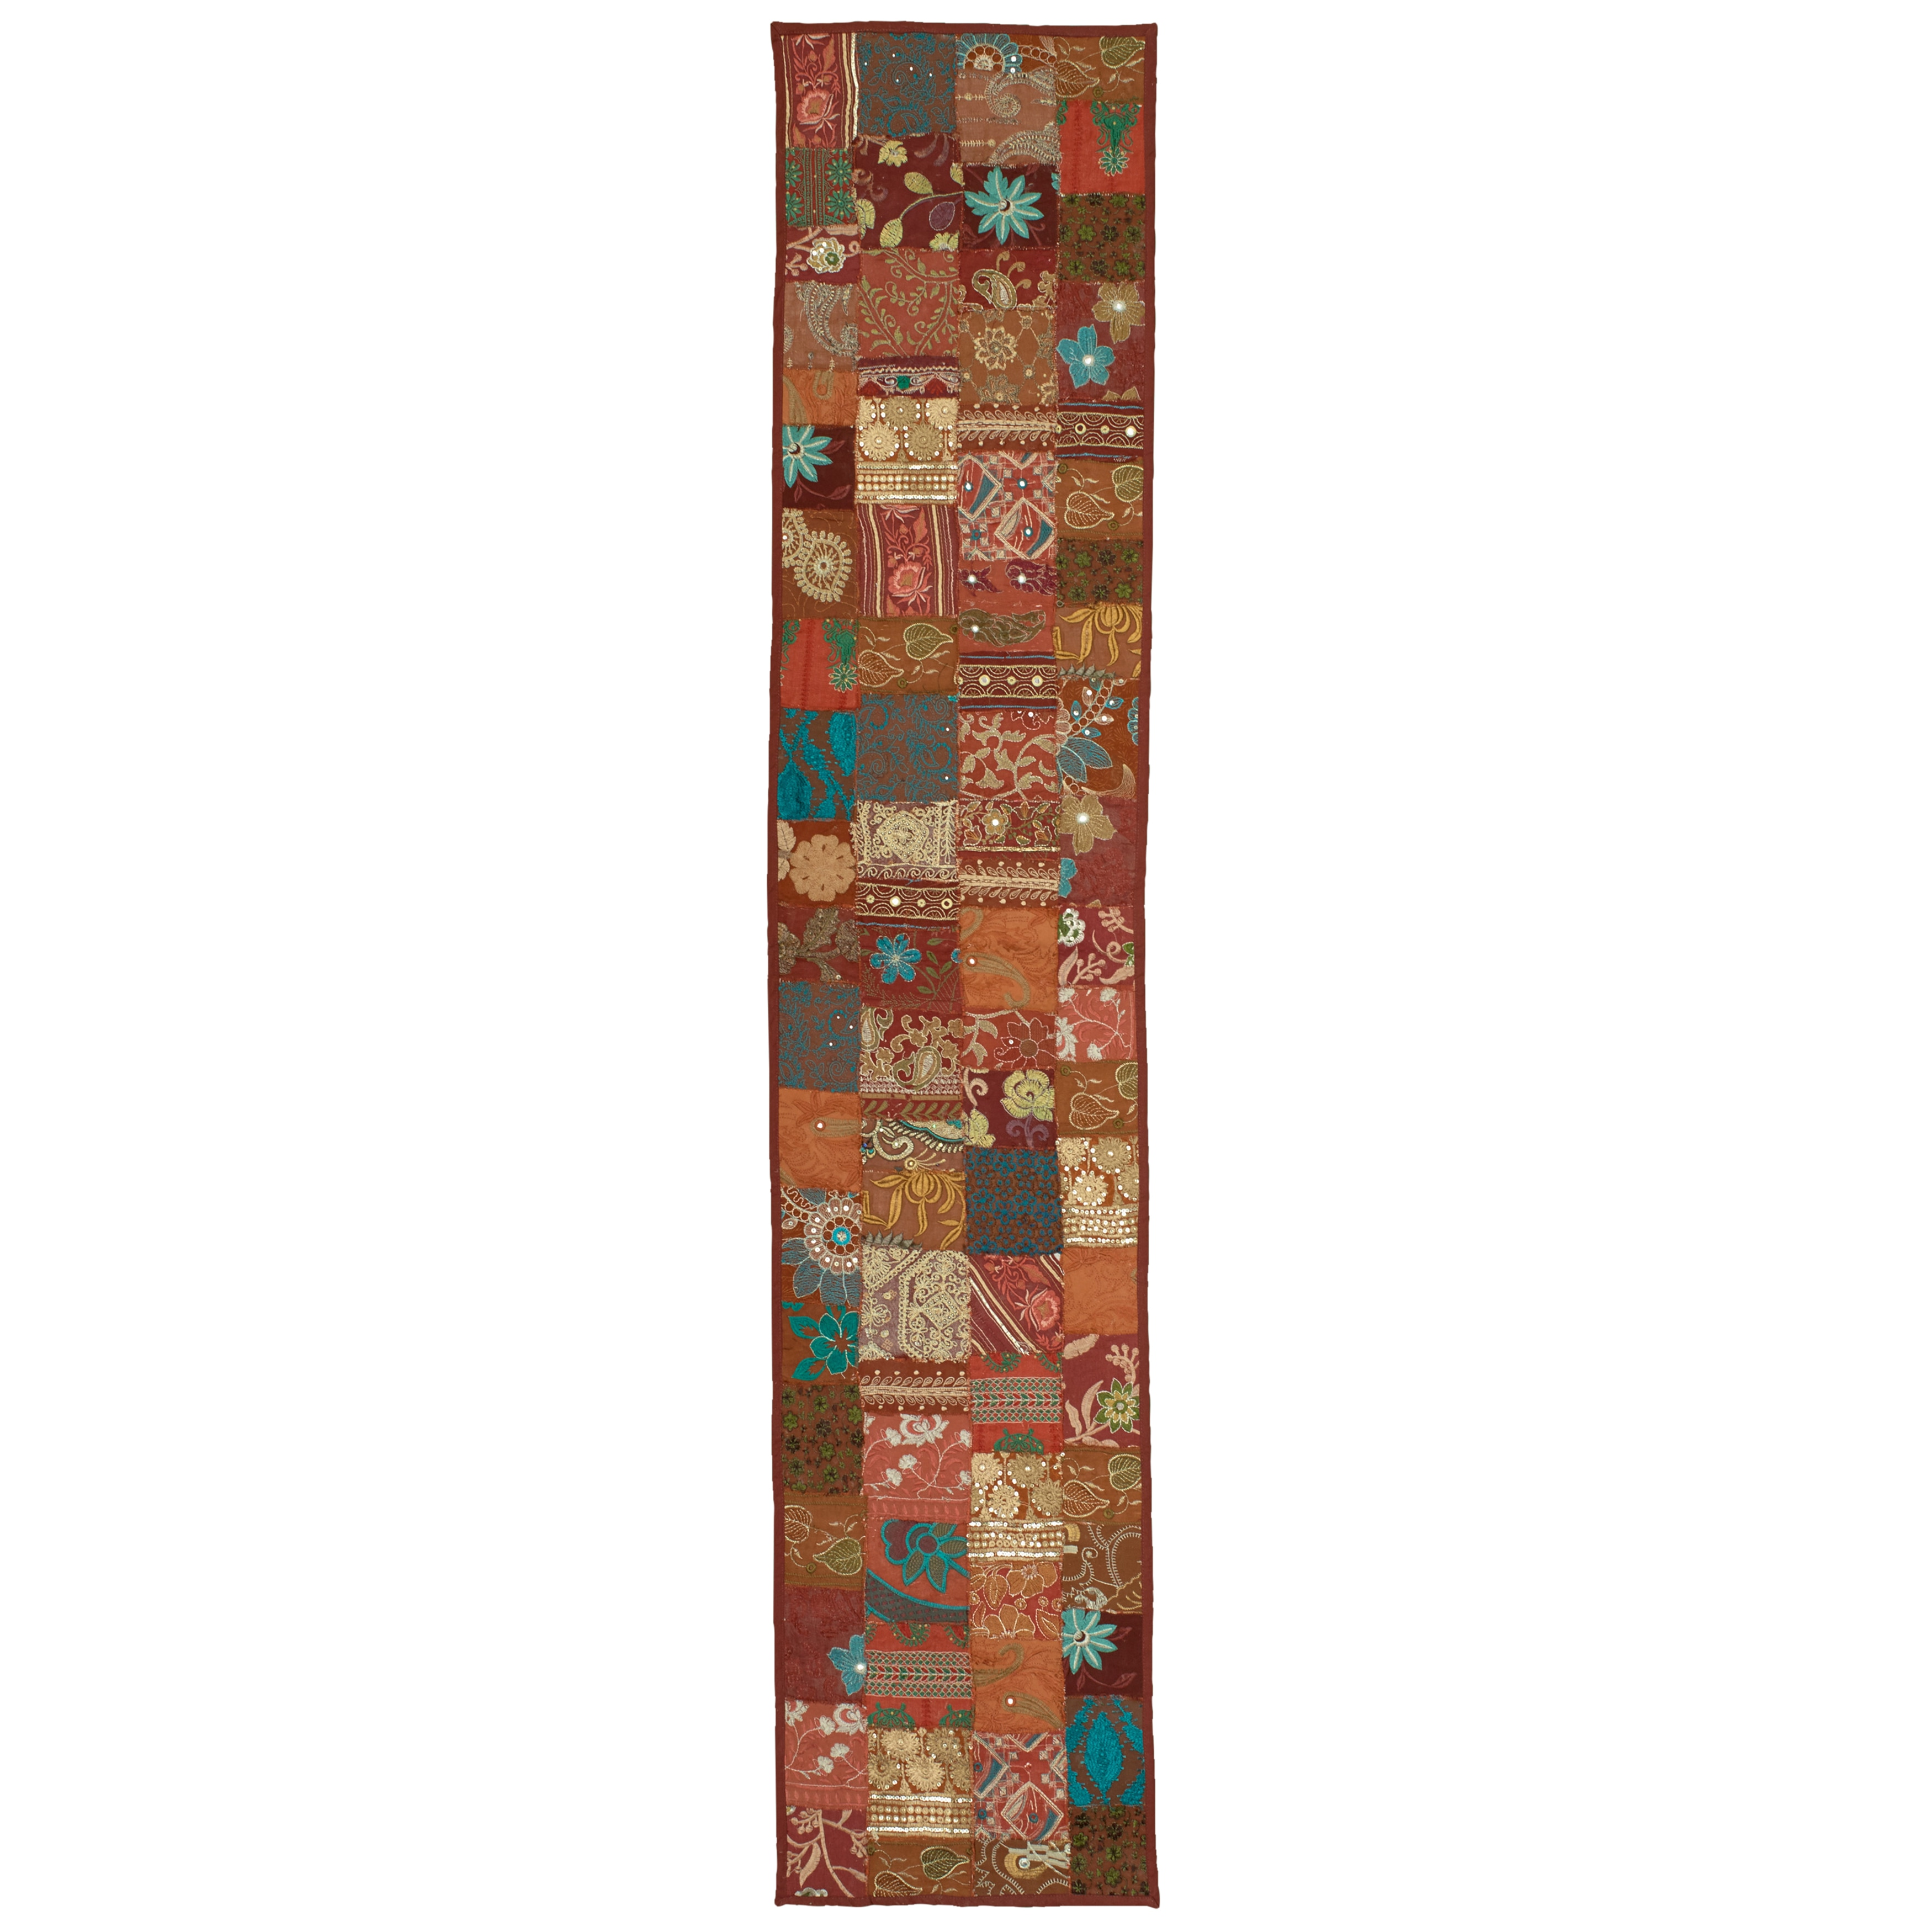 LR Resources Timbuktu Hand Crafted Maroon (Red) Cotton an...